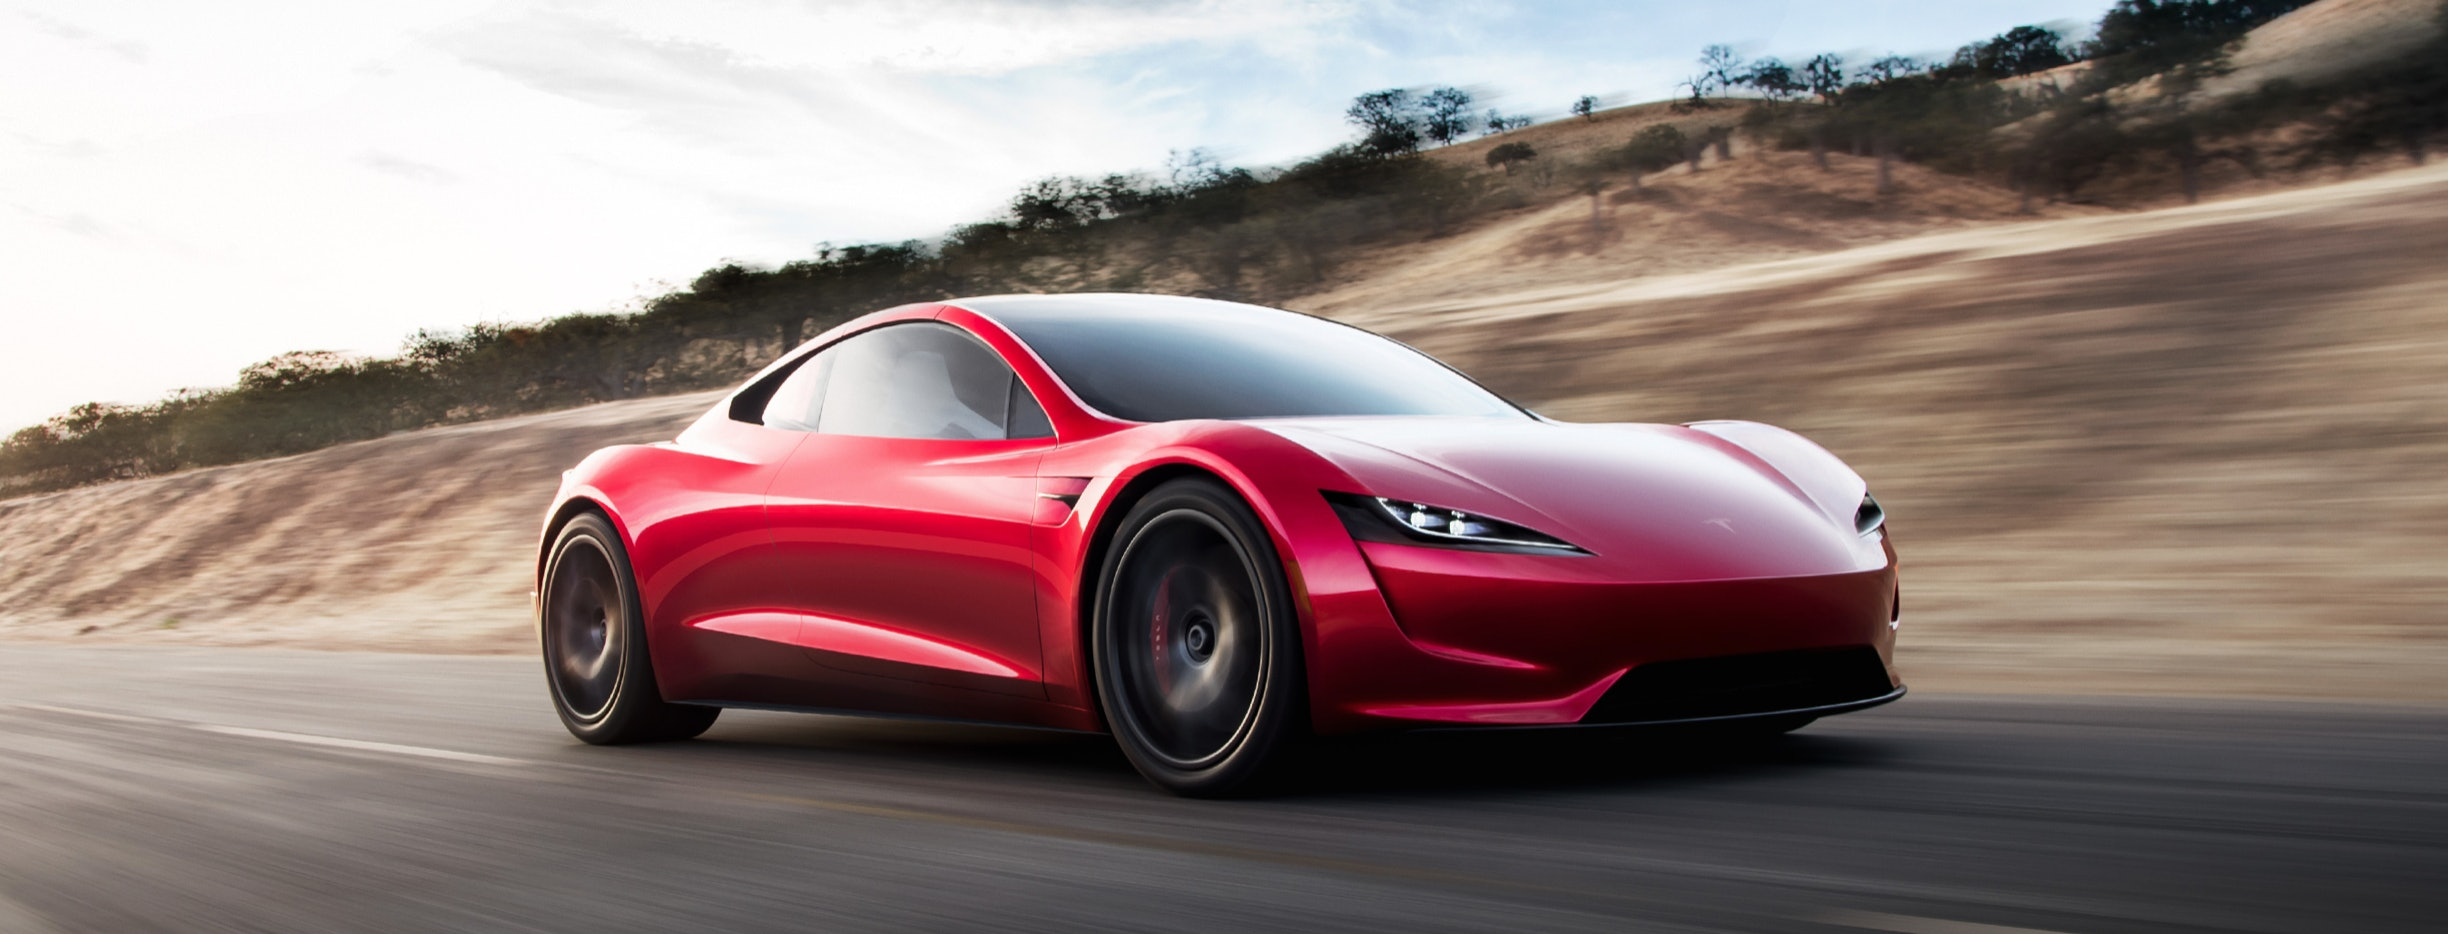 Tesla Next Gen Roadster Price And Specs For The Rocket Using Supercar